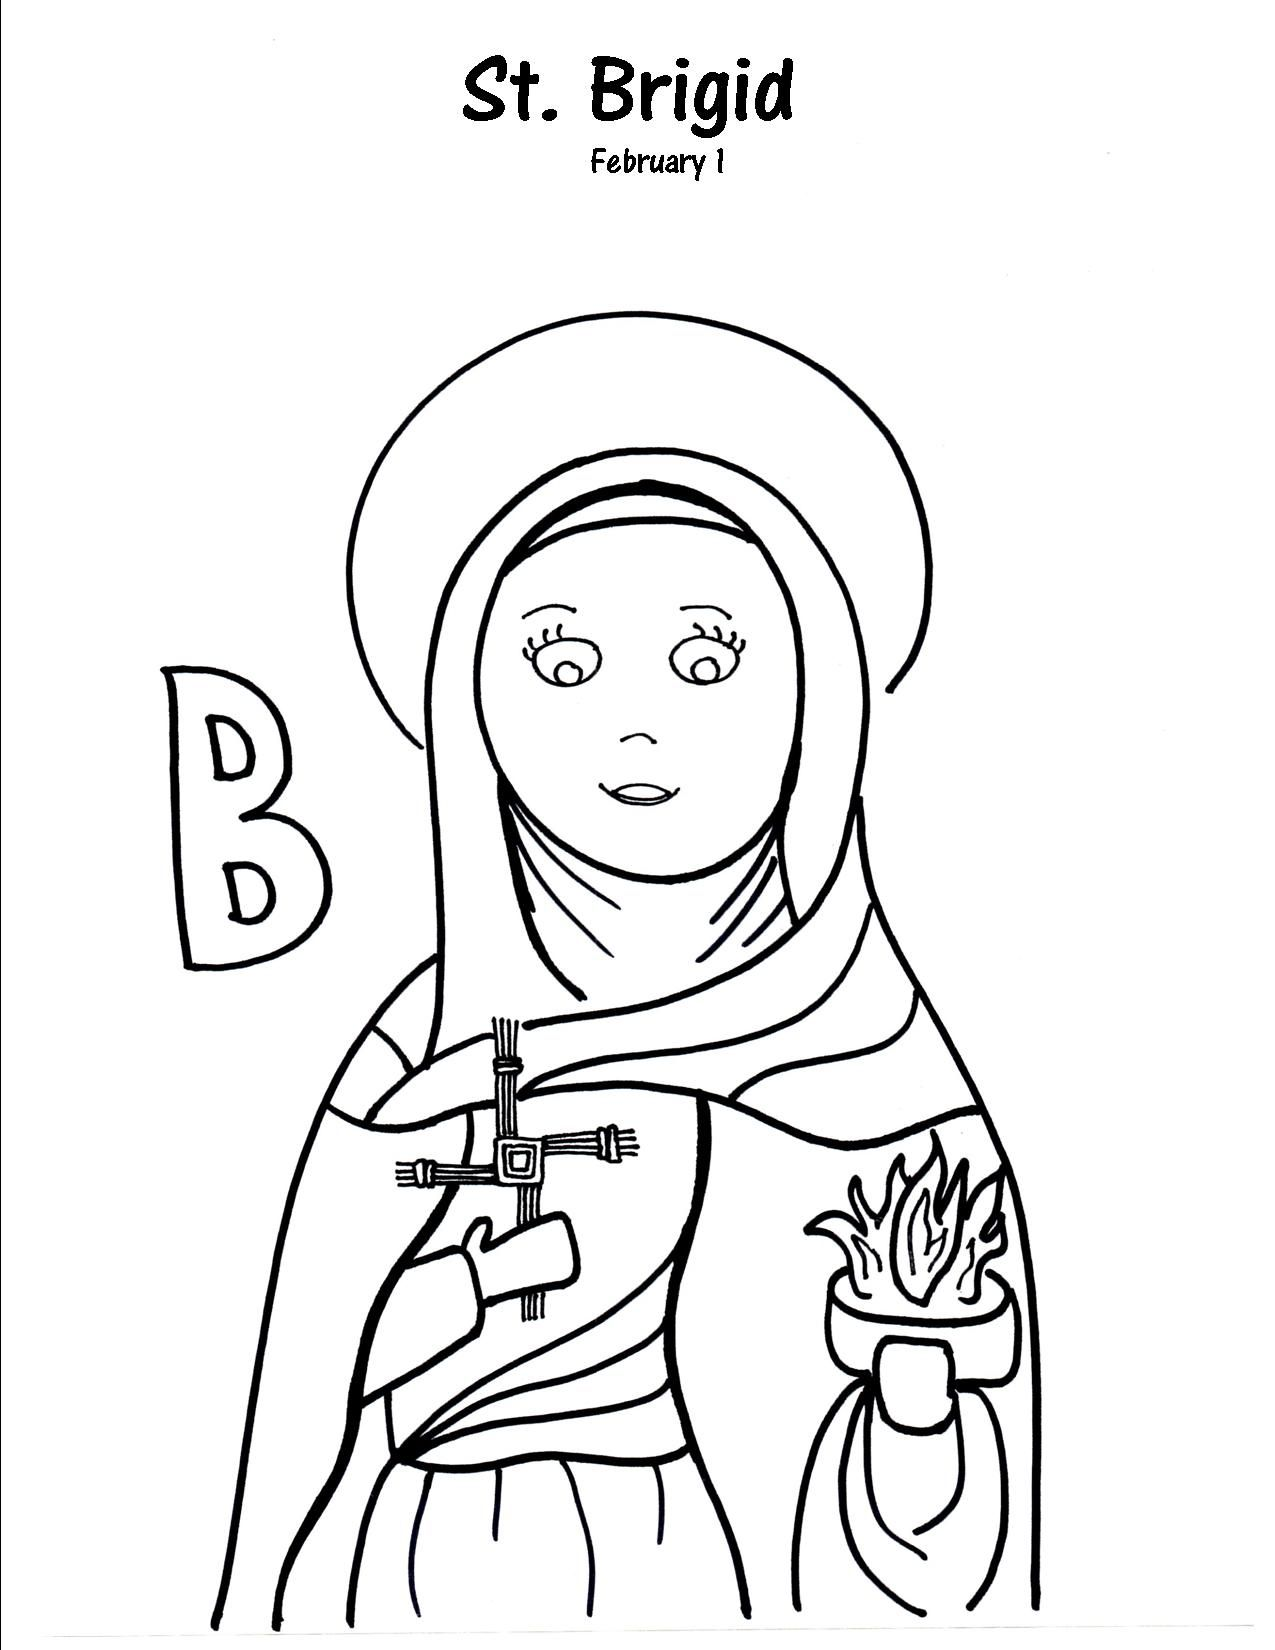 b is for st brigid project ideas pdf and filing st anthony coloring page saint brigid coloring pages